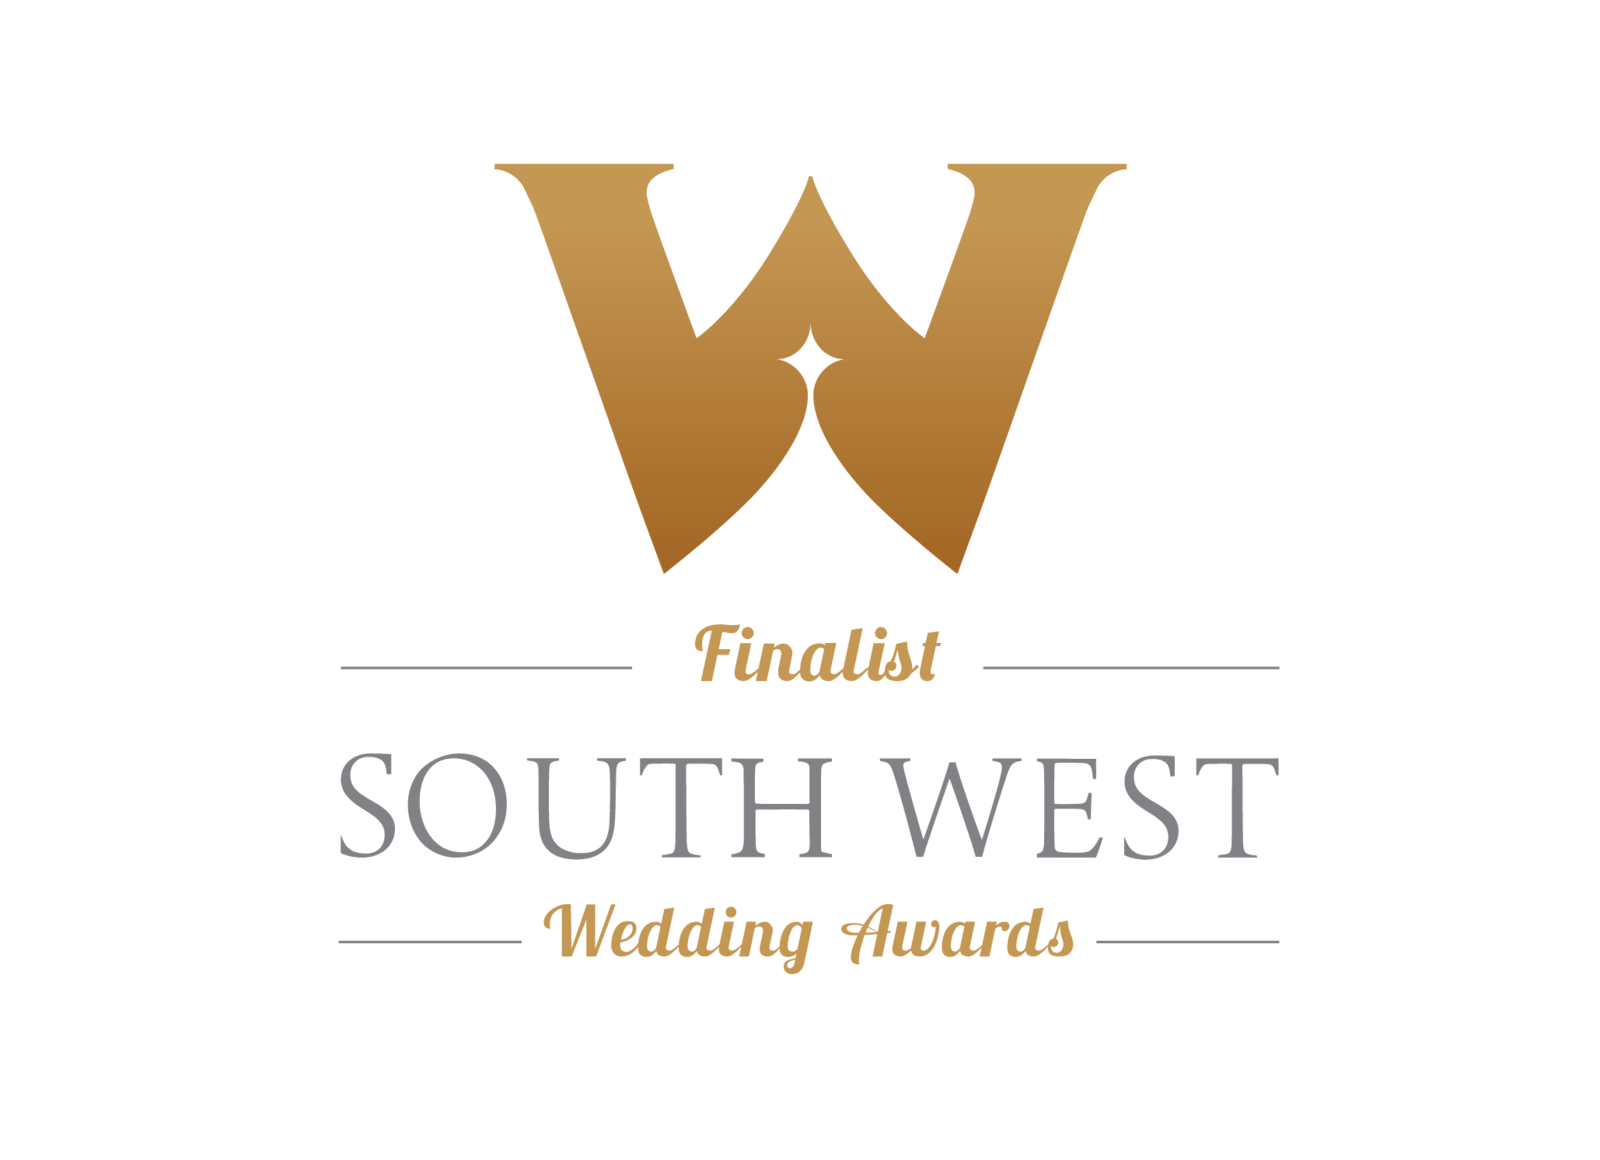 South West Wedding Awards Finalist 2016!